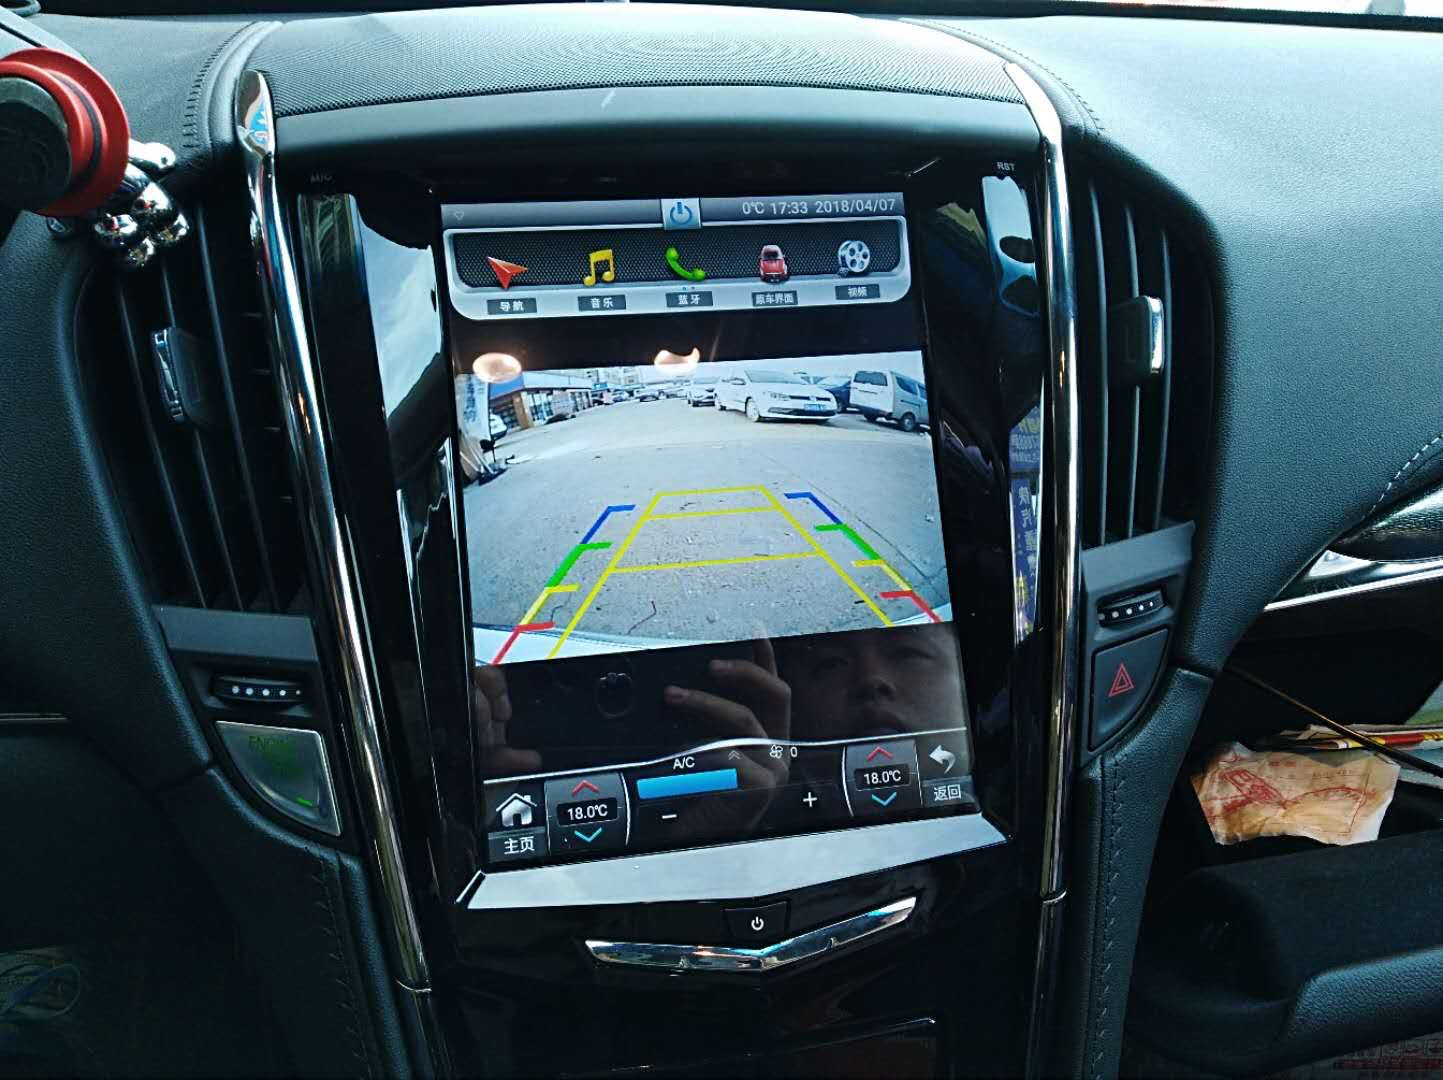 Cadillac Ats 2013 2018 10 Vertical Screen Android Radio Tesla Wire Harness Style Rhino Radios